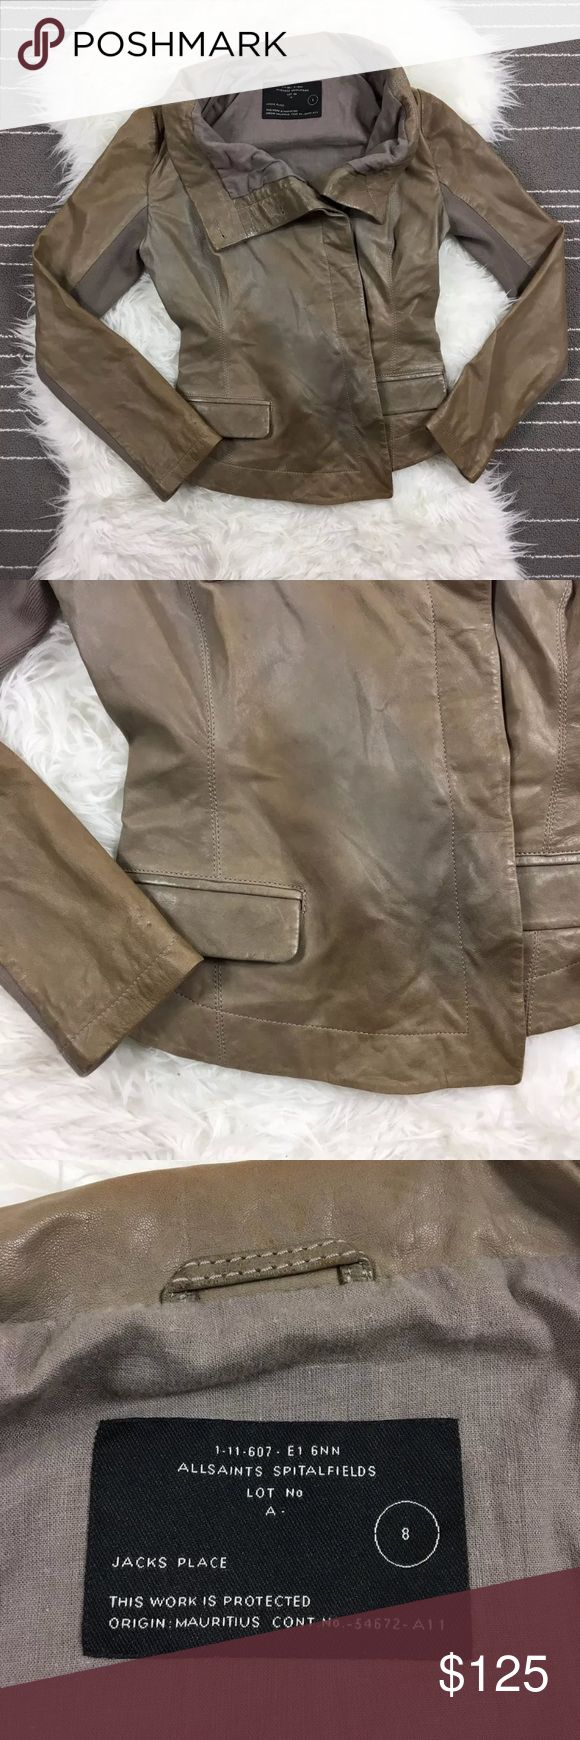 All Saints Lambskin Leather Jacket Beautiful, hardly worn All Saints Lambskin jacket. Fits an XS, size 8 UK. I'm usually a size 4 in US and this just fits. Water drop on right side as shown and one on sleeve. Small holes where security tag were as shown. All Saints Jackets & Coats